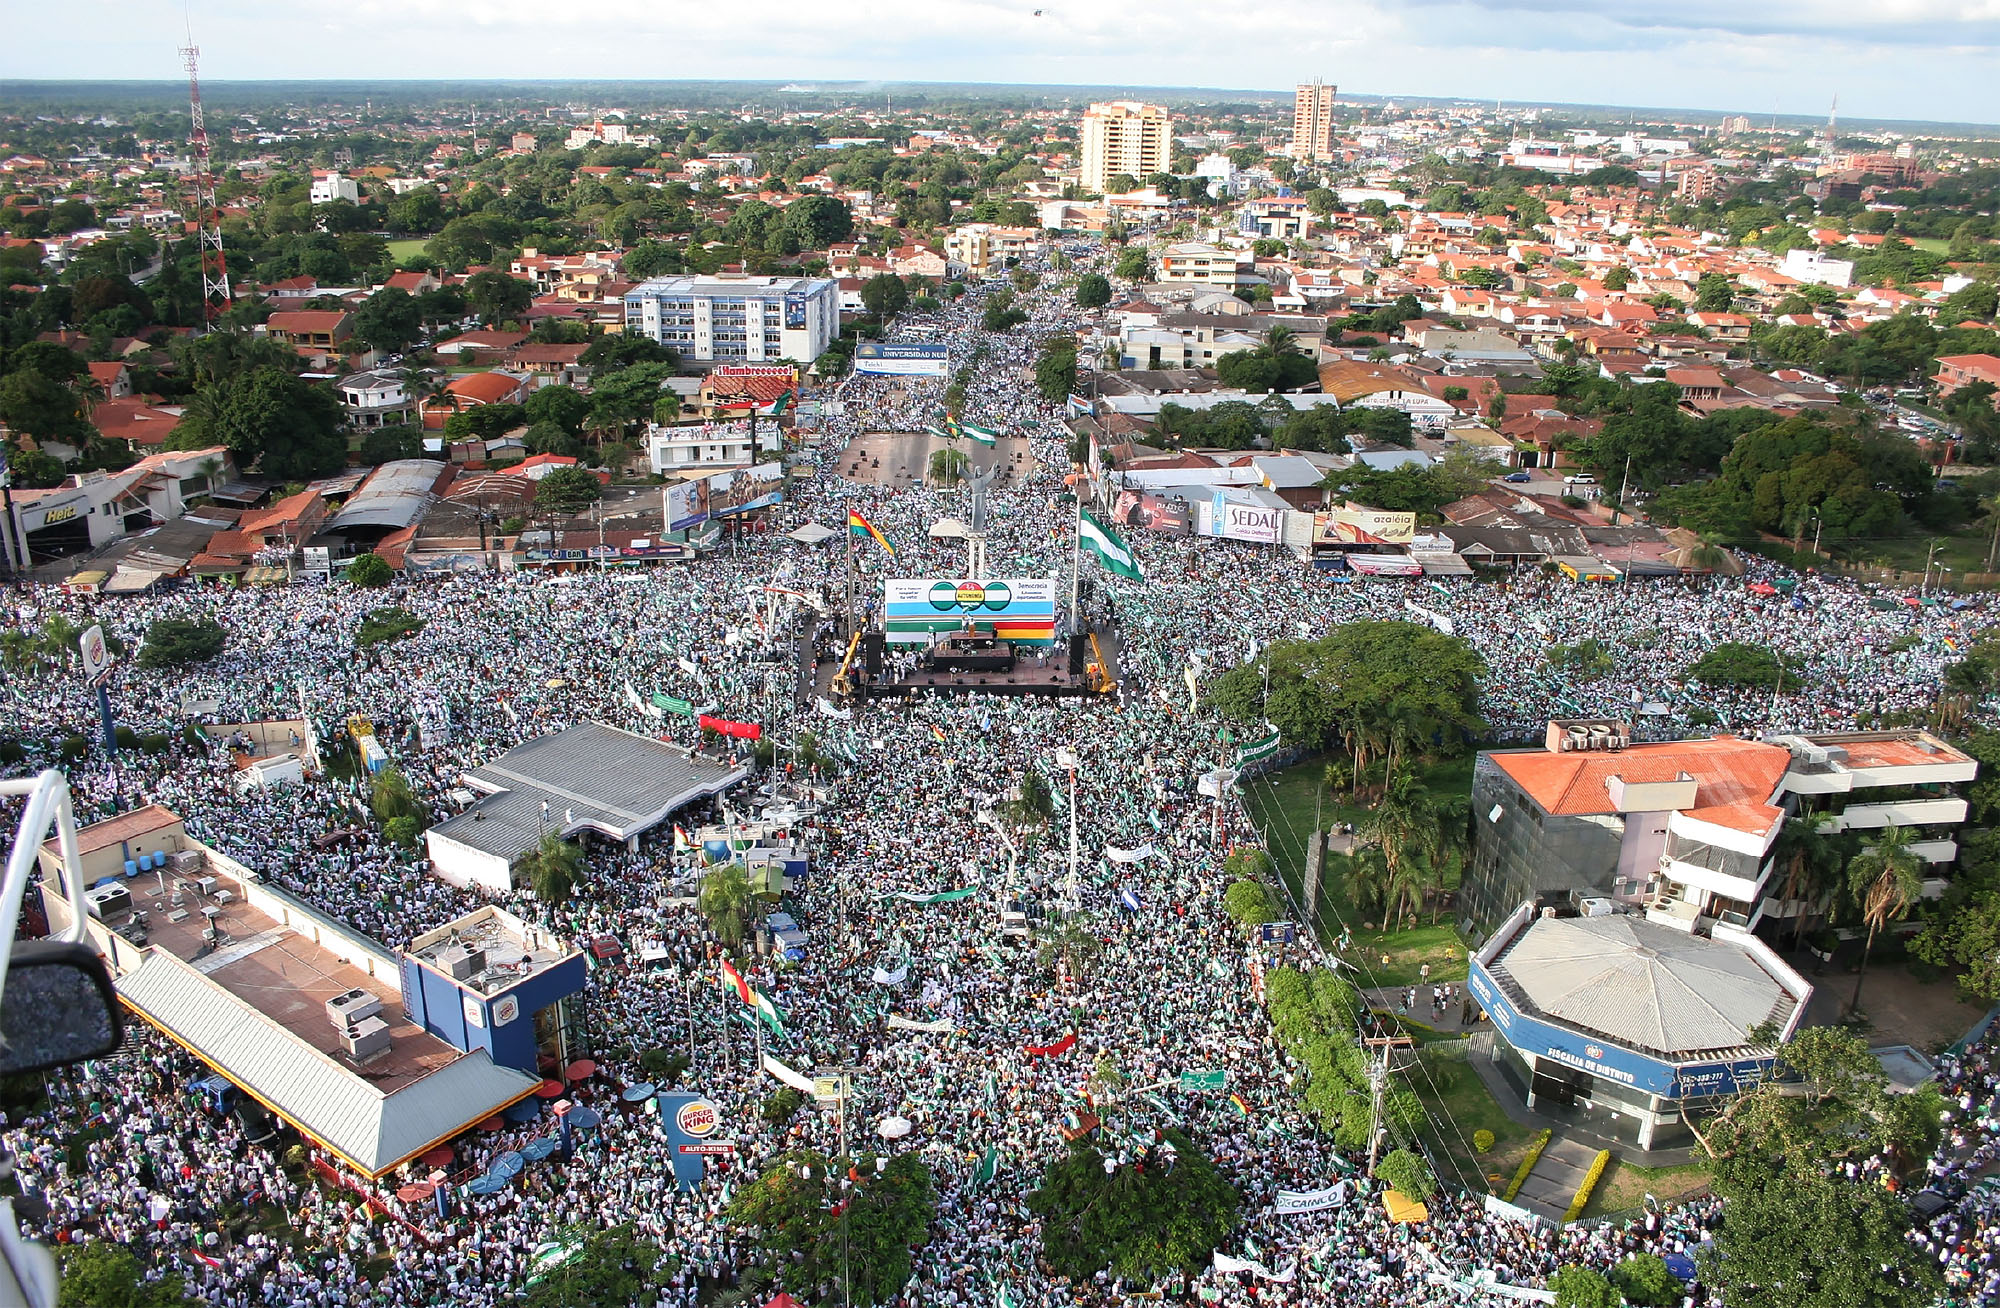 """An aerial view of a huge crowd of people in plaza in Santa Cruz, Bolivia, as part of the 2006 """"Cabildo del Millión"""" demonstration supporting autonomy for Santa Cruz within Bolivia. (Photo courtesy of the Comité Pro Santa Cruz.)"""